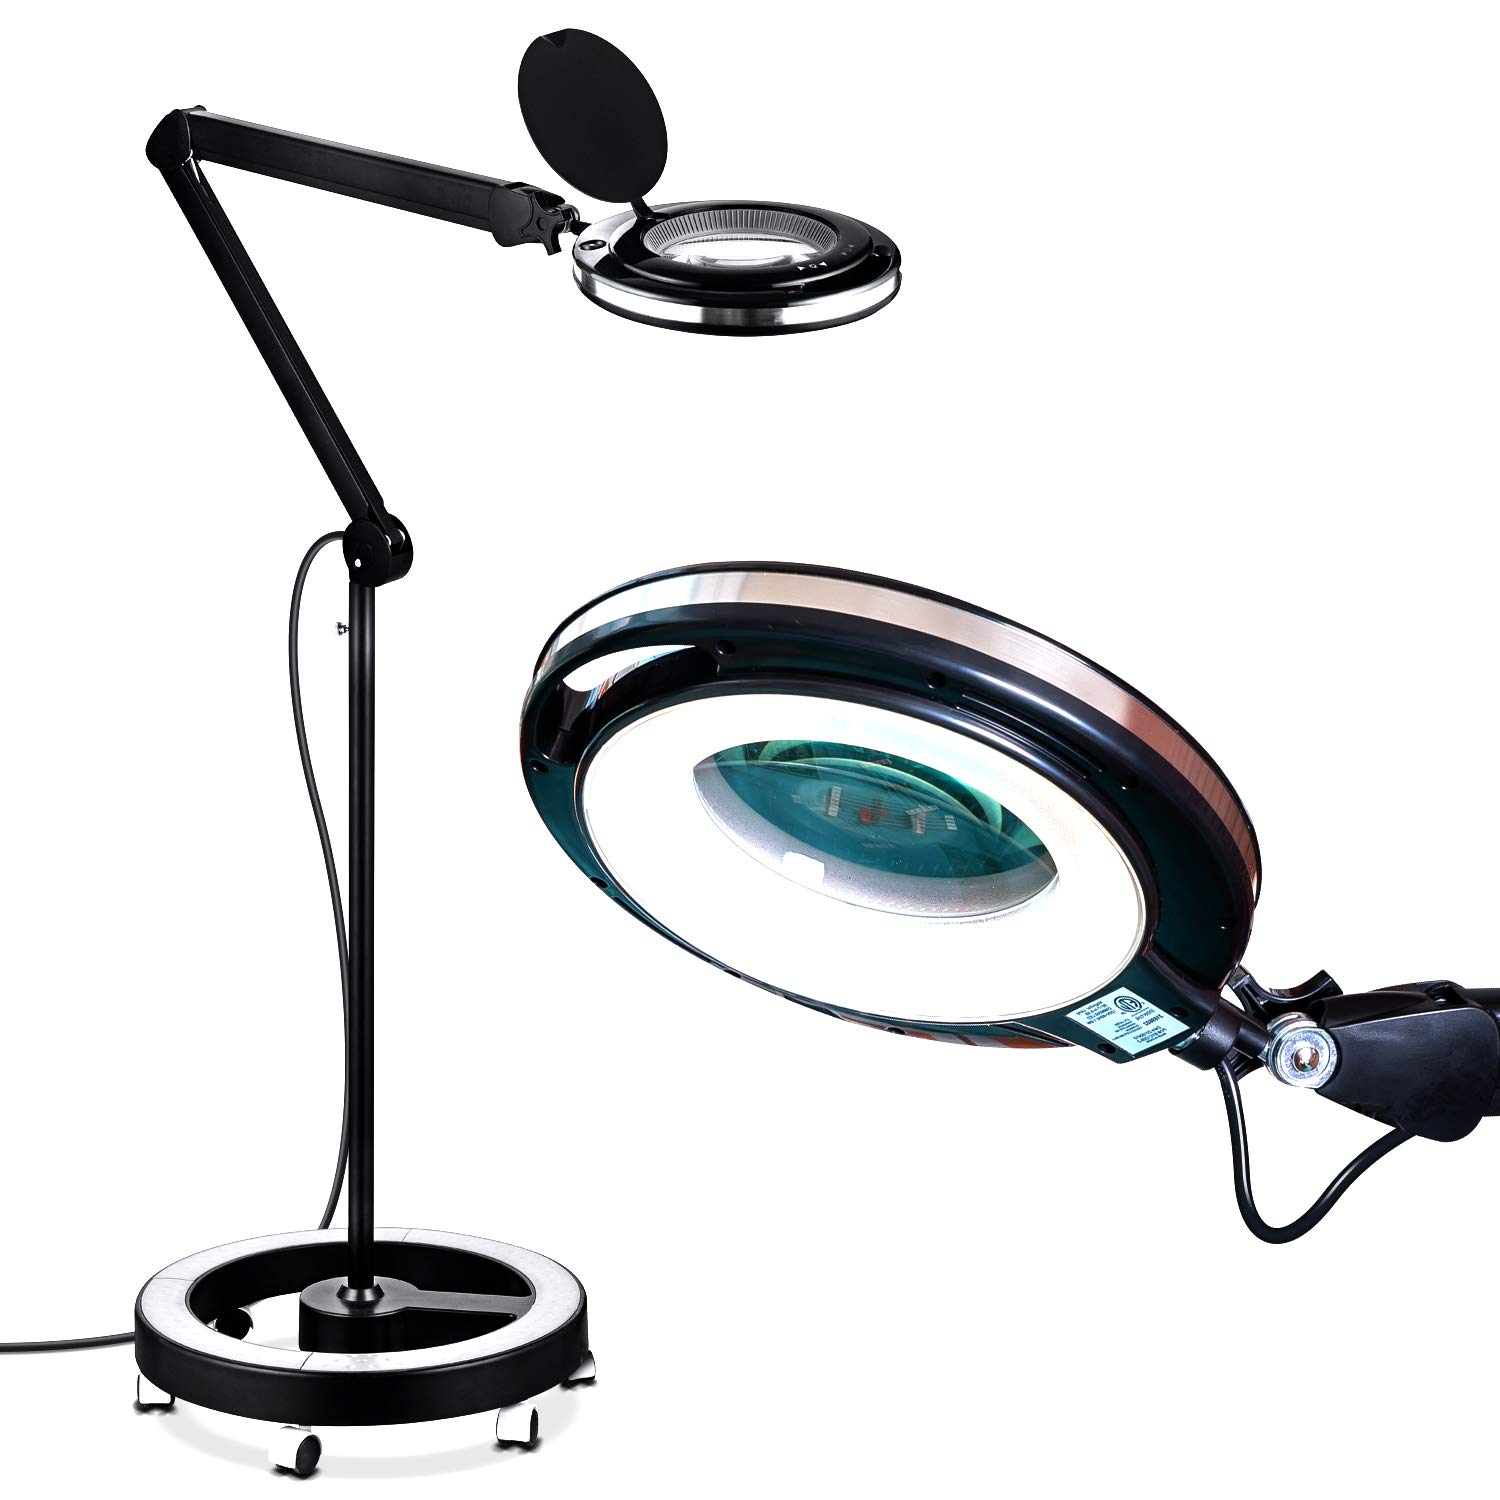 Brightech LightView Pro LED Magnifying Glass Floor Lamp - 5 Diopter Lens - 6 Wheel Rolling Base Reading Magnifier Light with Gooseneck - for Professional Tasks and Crafts -Black